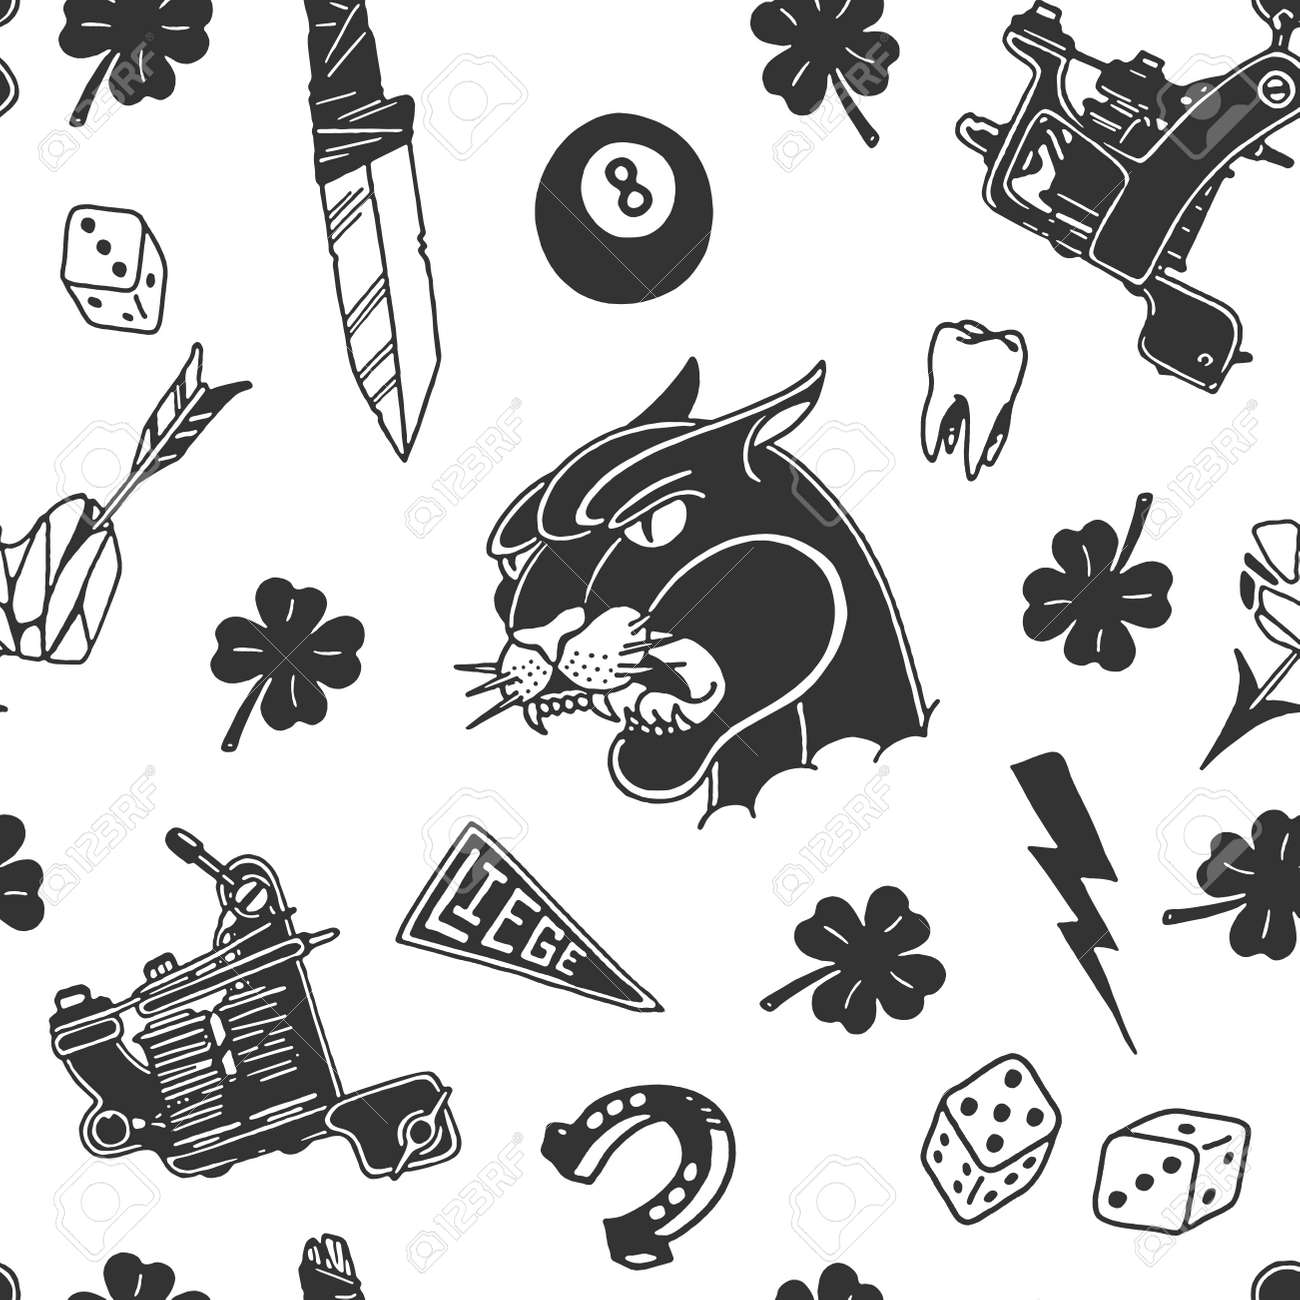 Traditional Tattoo Designs Pattern Design Illustration Royalty Free Cliparts Vectors And Stock Illustration Image 88611842 I will create your unique tattoo design 100% online get a high quality and unique tattoo design in polynesian style according your wishes to. traditional tattoo designs pattern design illustration